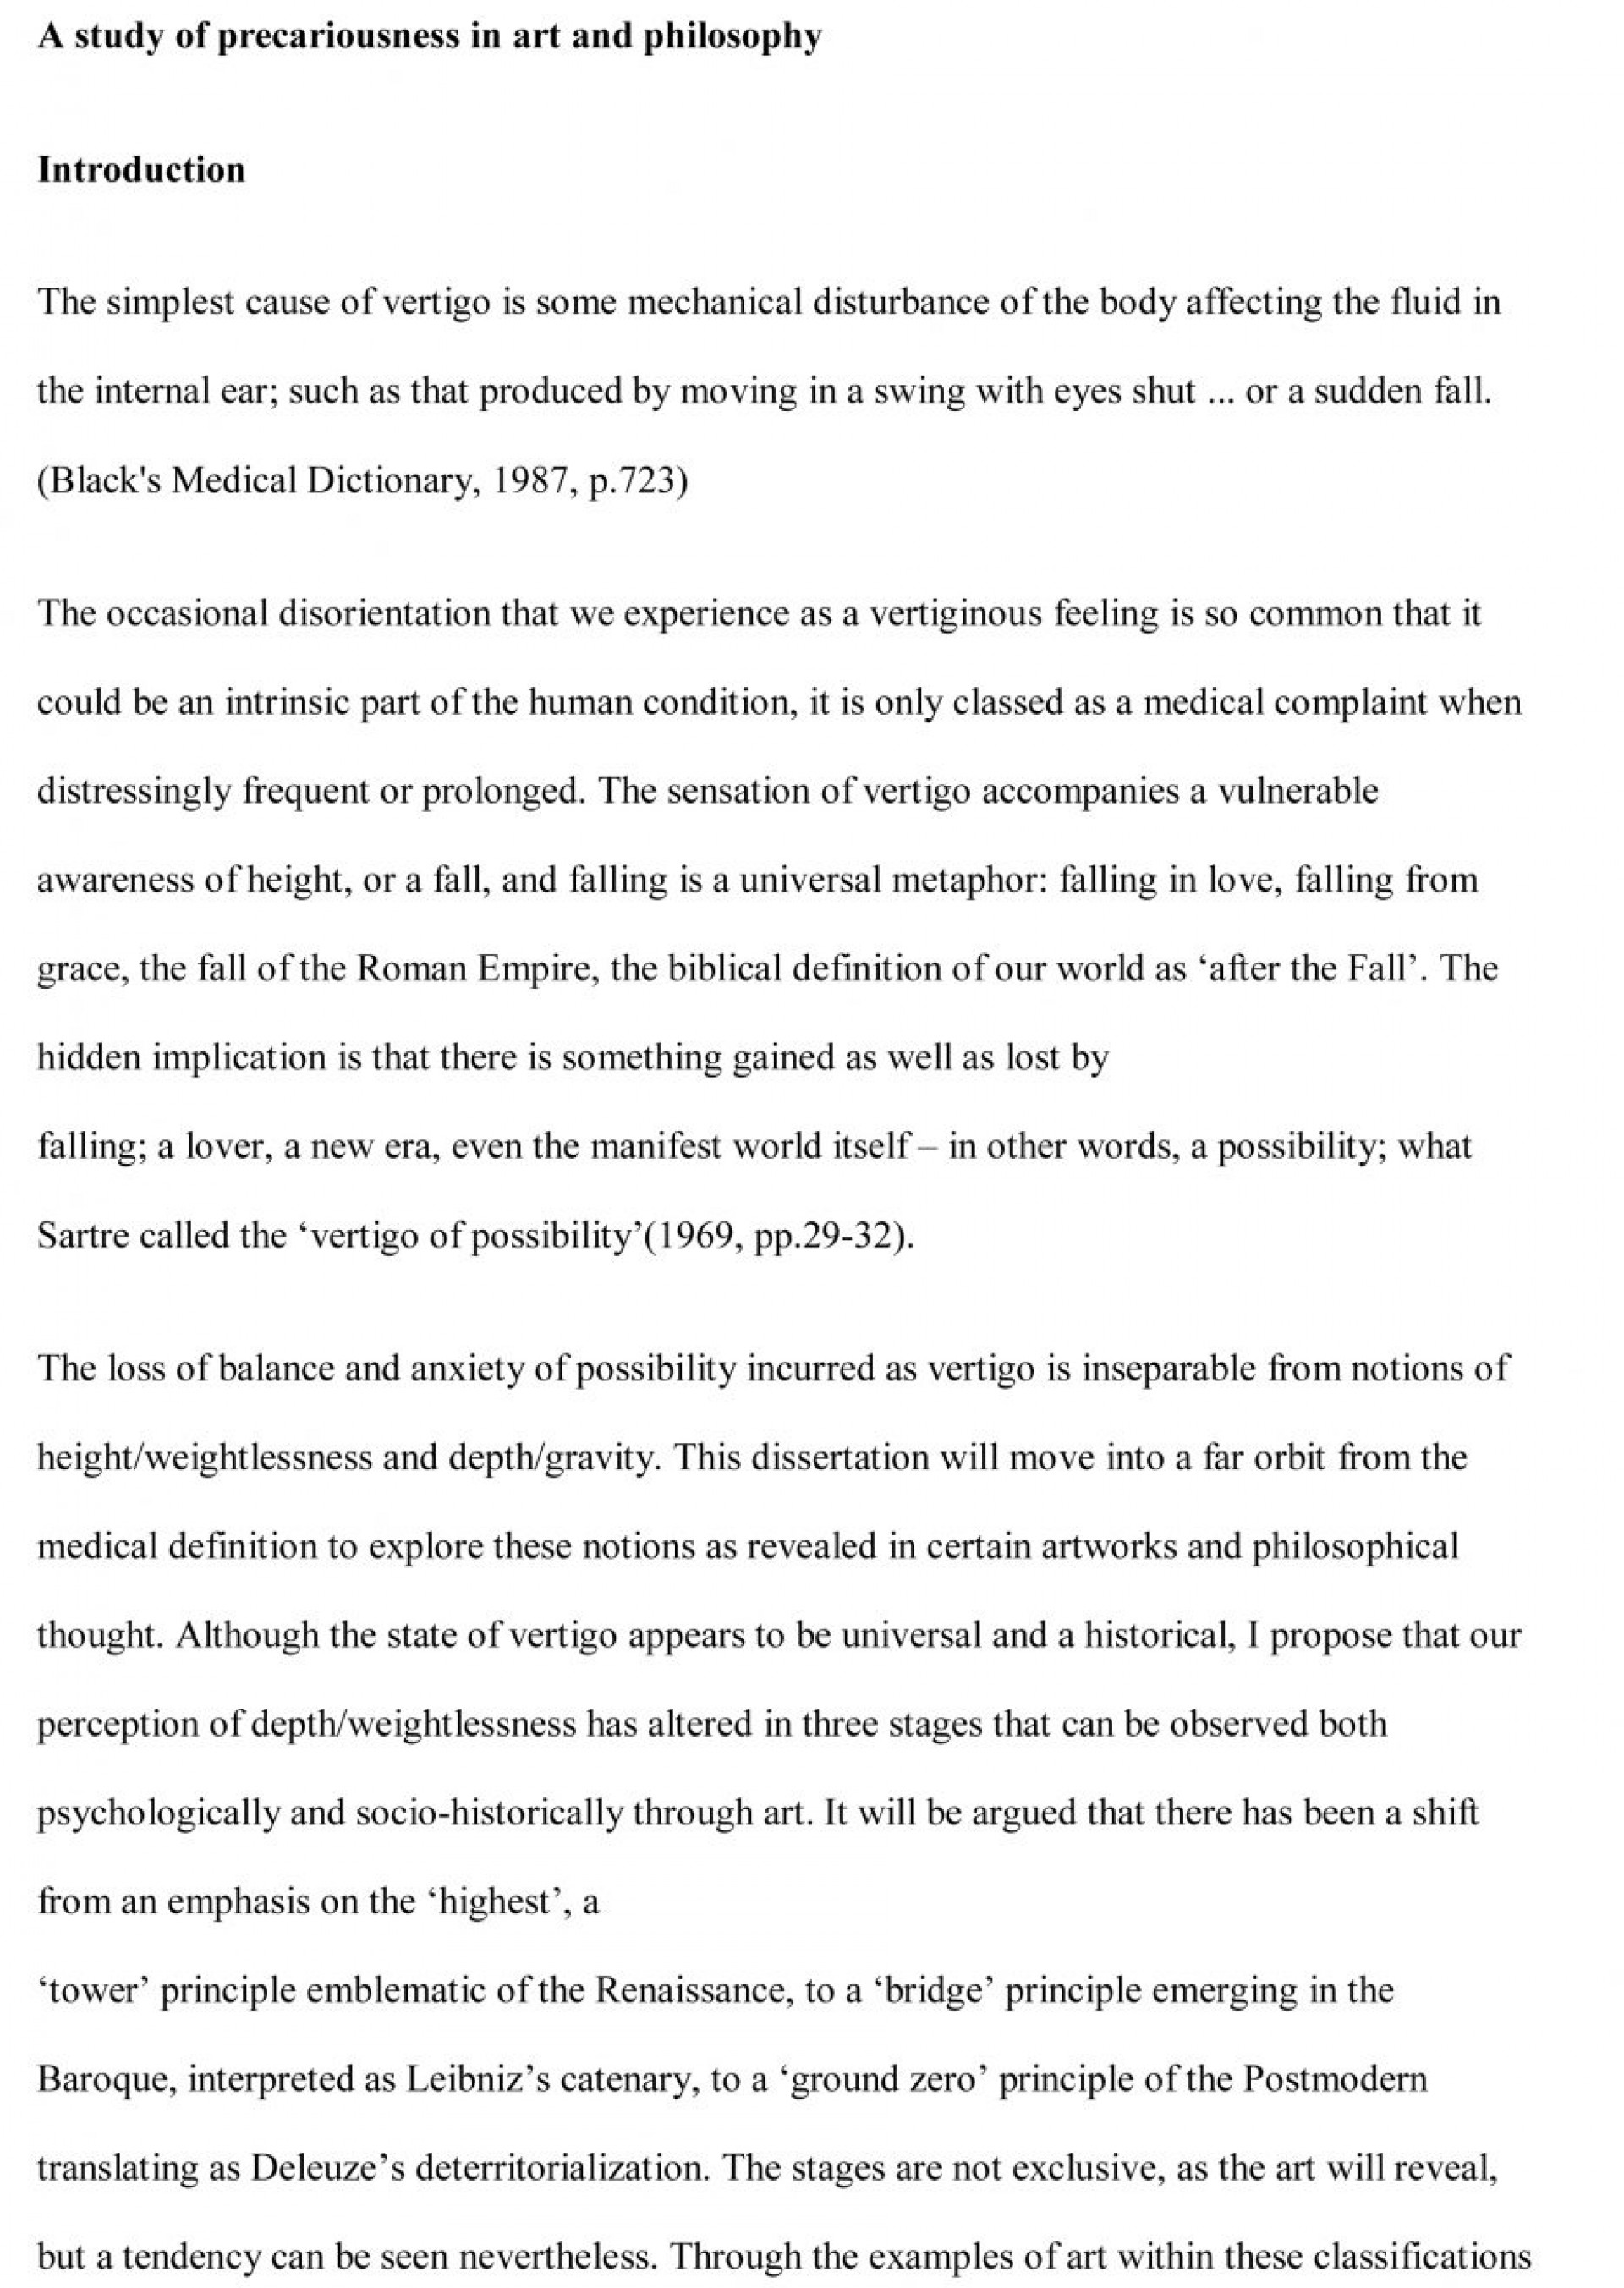 016 Hard Work Essay The Key Success Art Coursework Sample Essays On In Hindi Is To Wikipedia Pays Off Brings Students Life Always Role Of And Dedication 936x1319 Wonderful Pdf Writing 1920